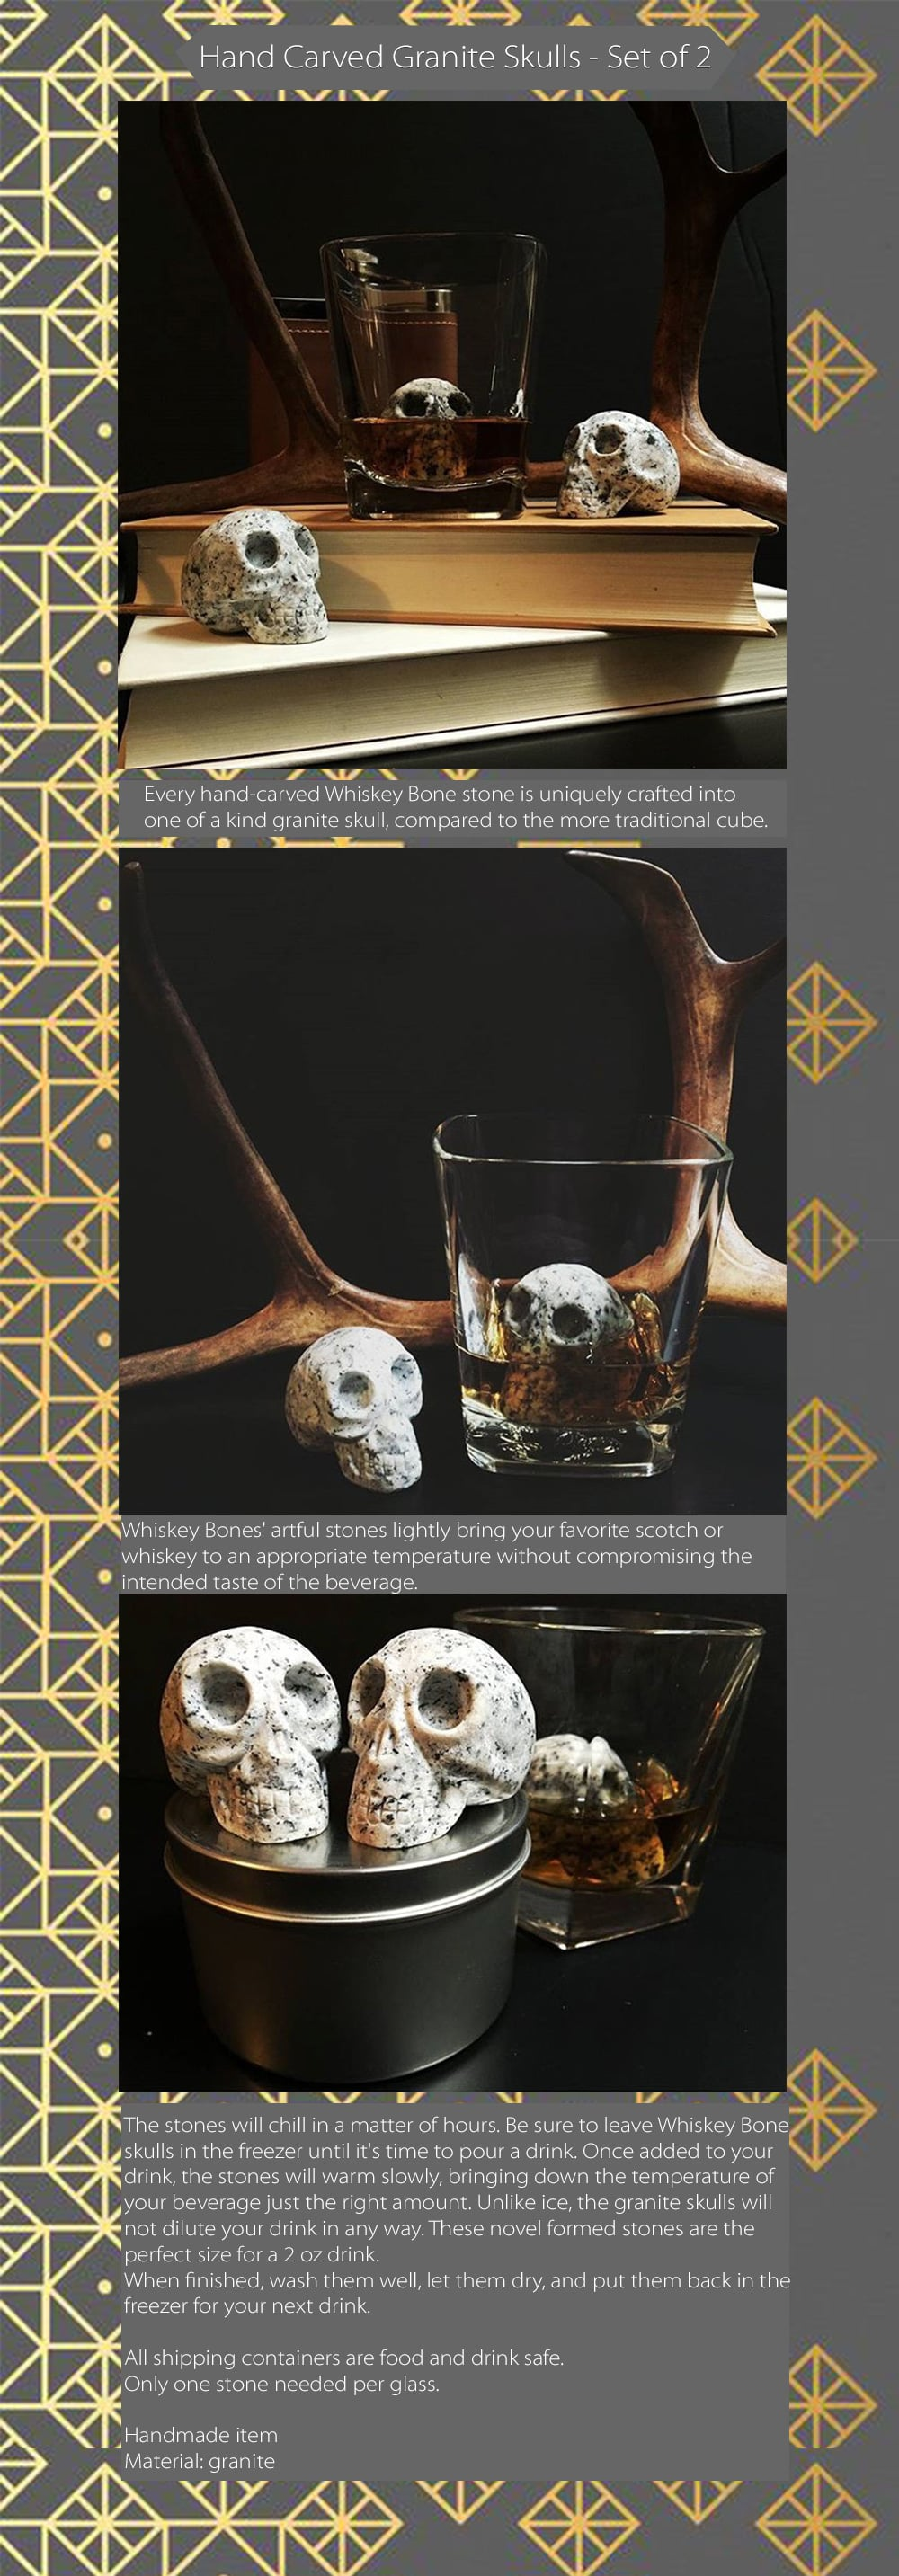 WHISKEY BONES Hand Carved Whiskey Stones - Set of 2 Enjoy Your Whiskey With Our Skulls